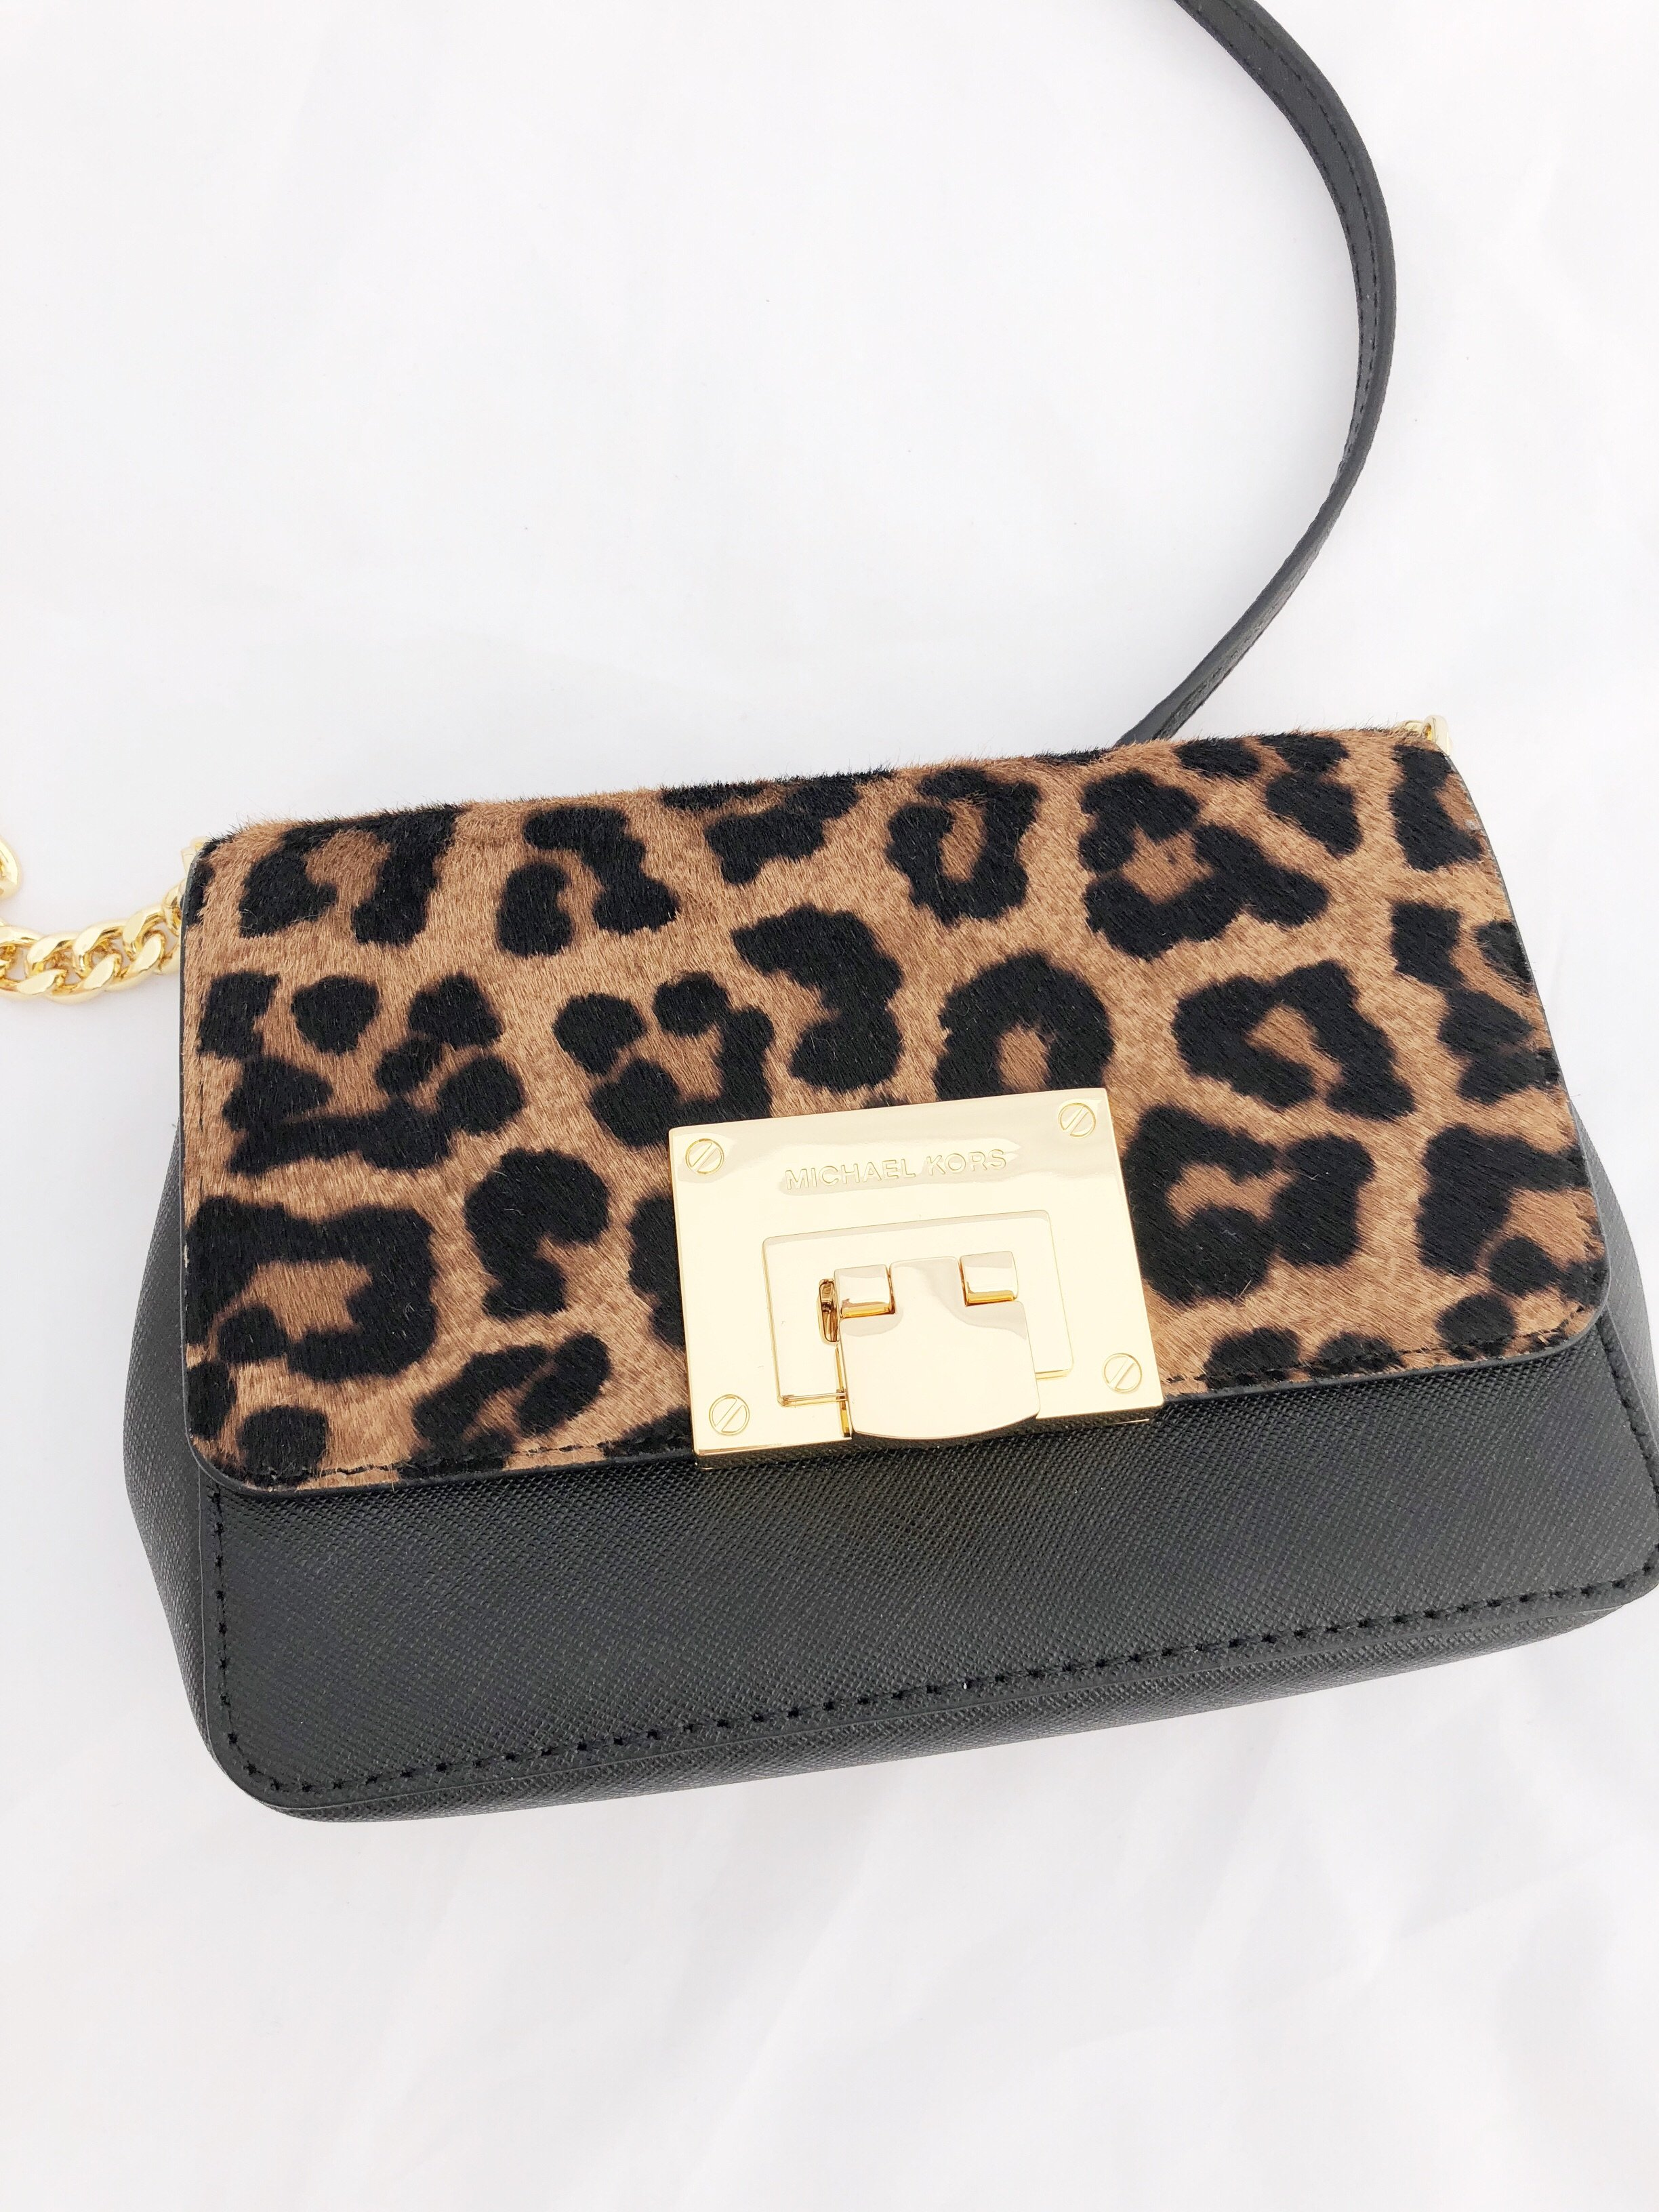 7d793da7620a ... wholesale michael kors tina mk mini crossbody bag black leopard calf  hair 7289e 0bded